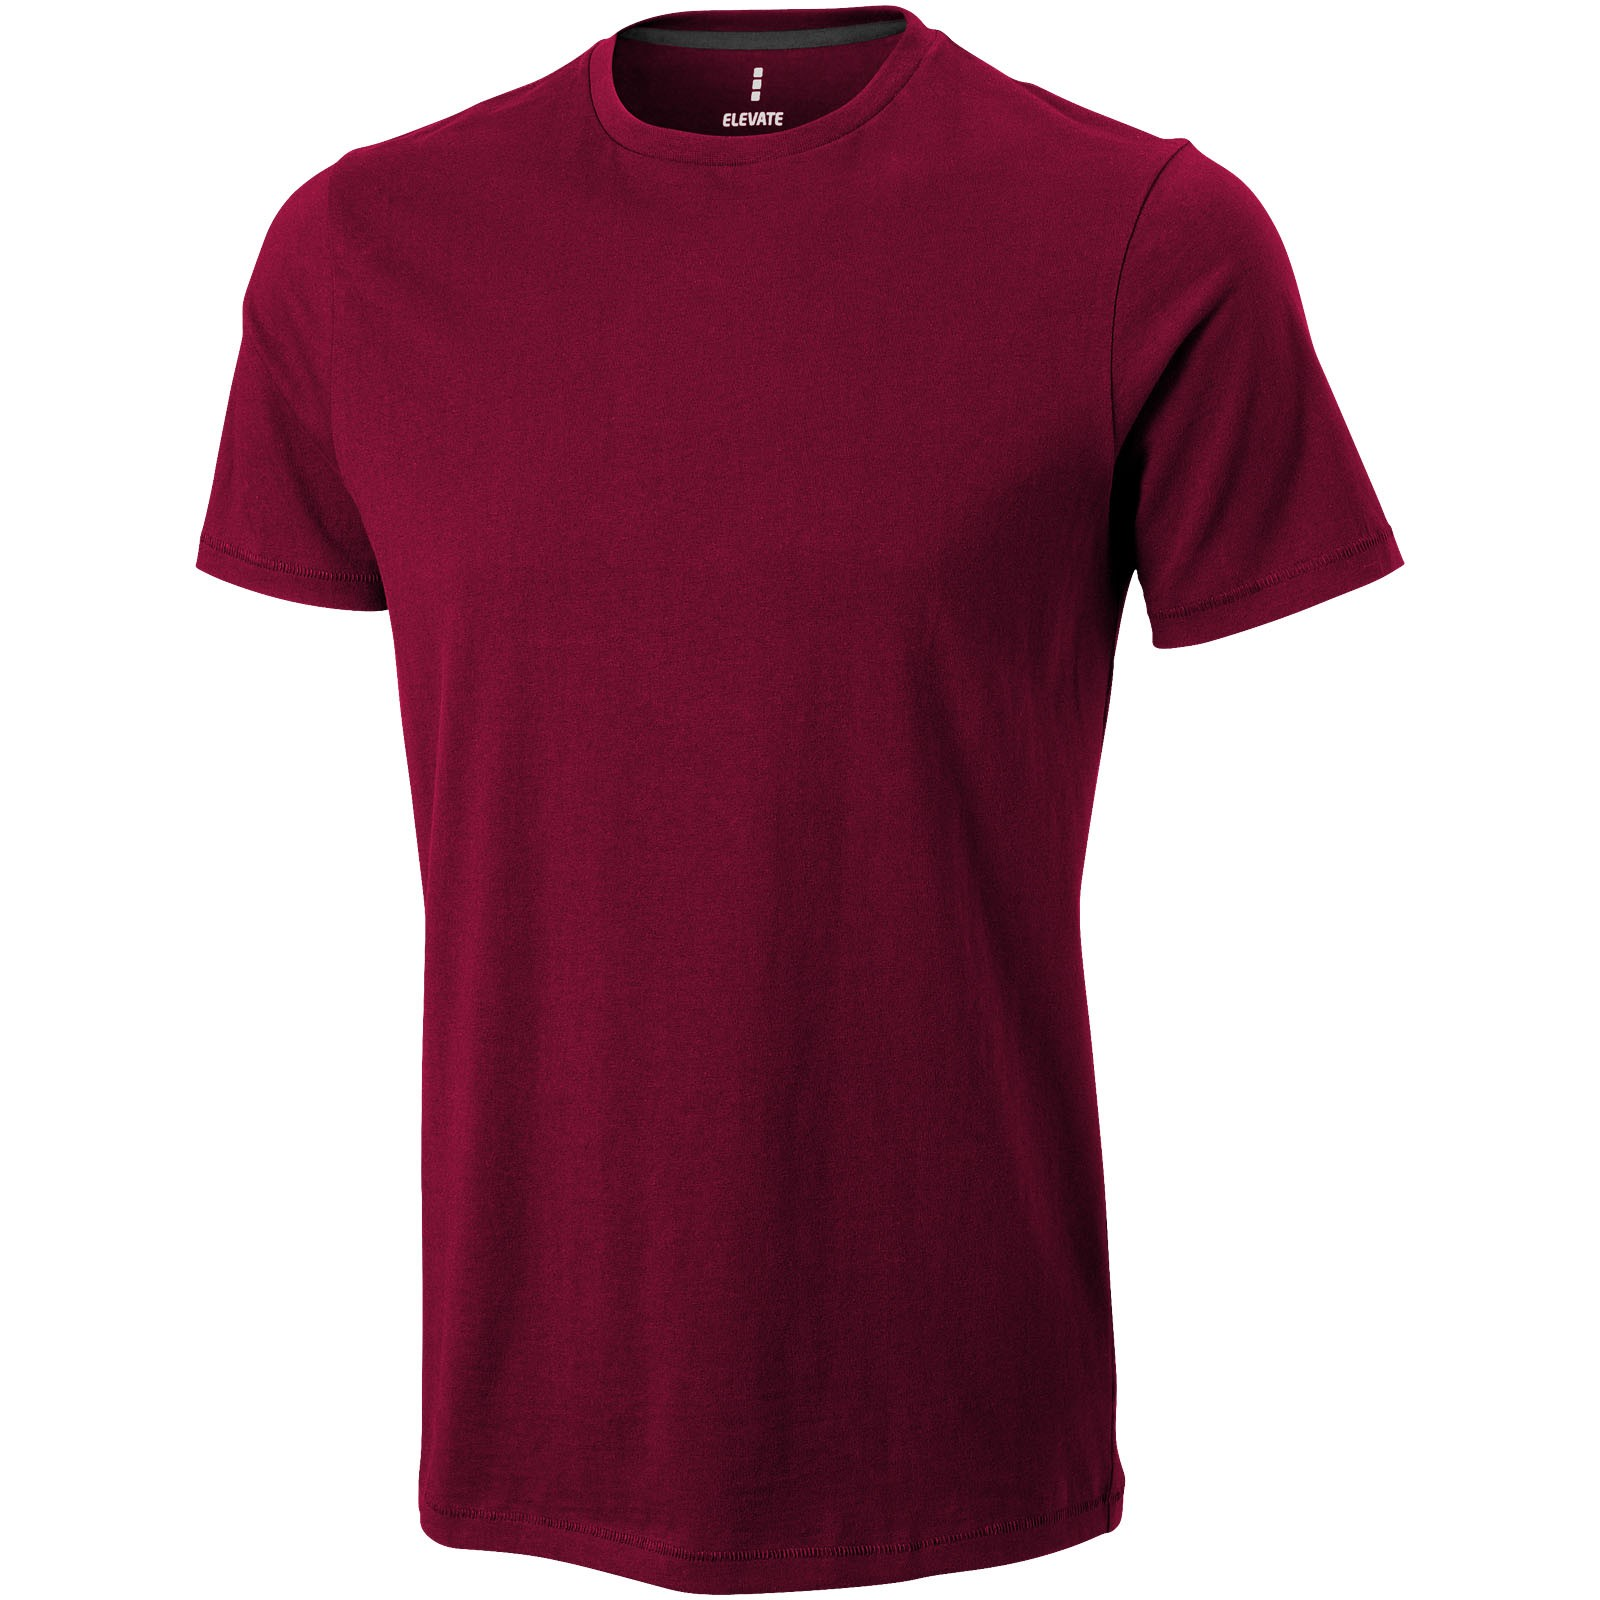 Nanaimo short sleeve men's t-shirt - Burgundy / XS